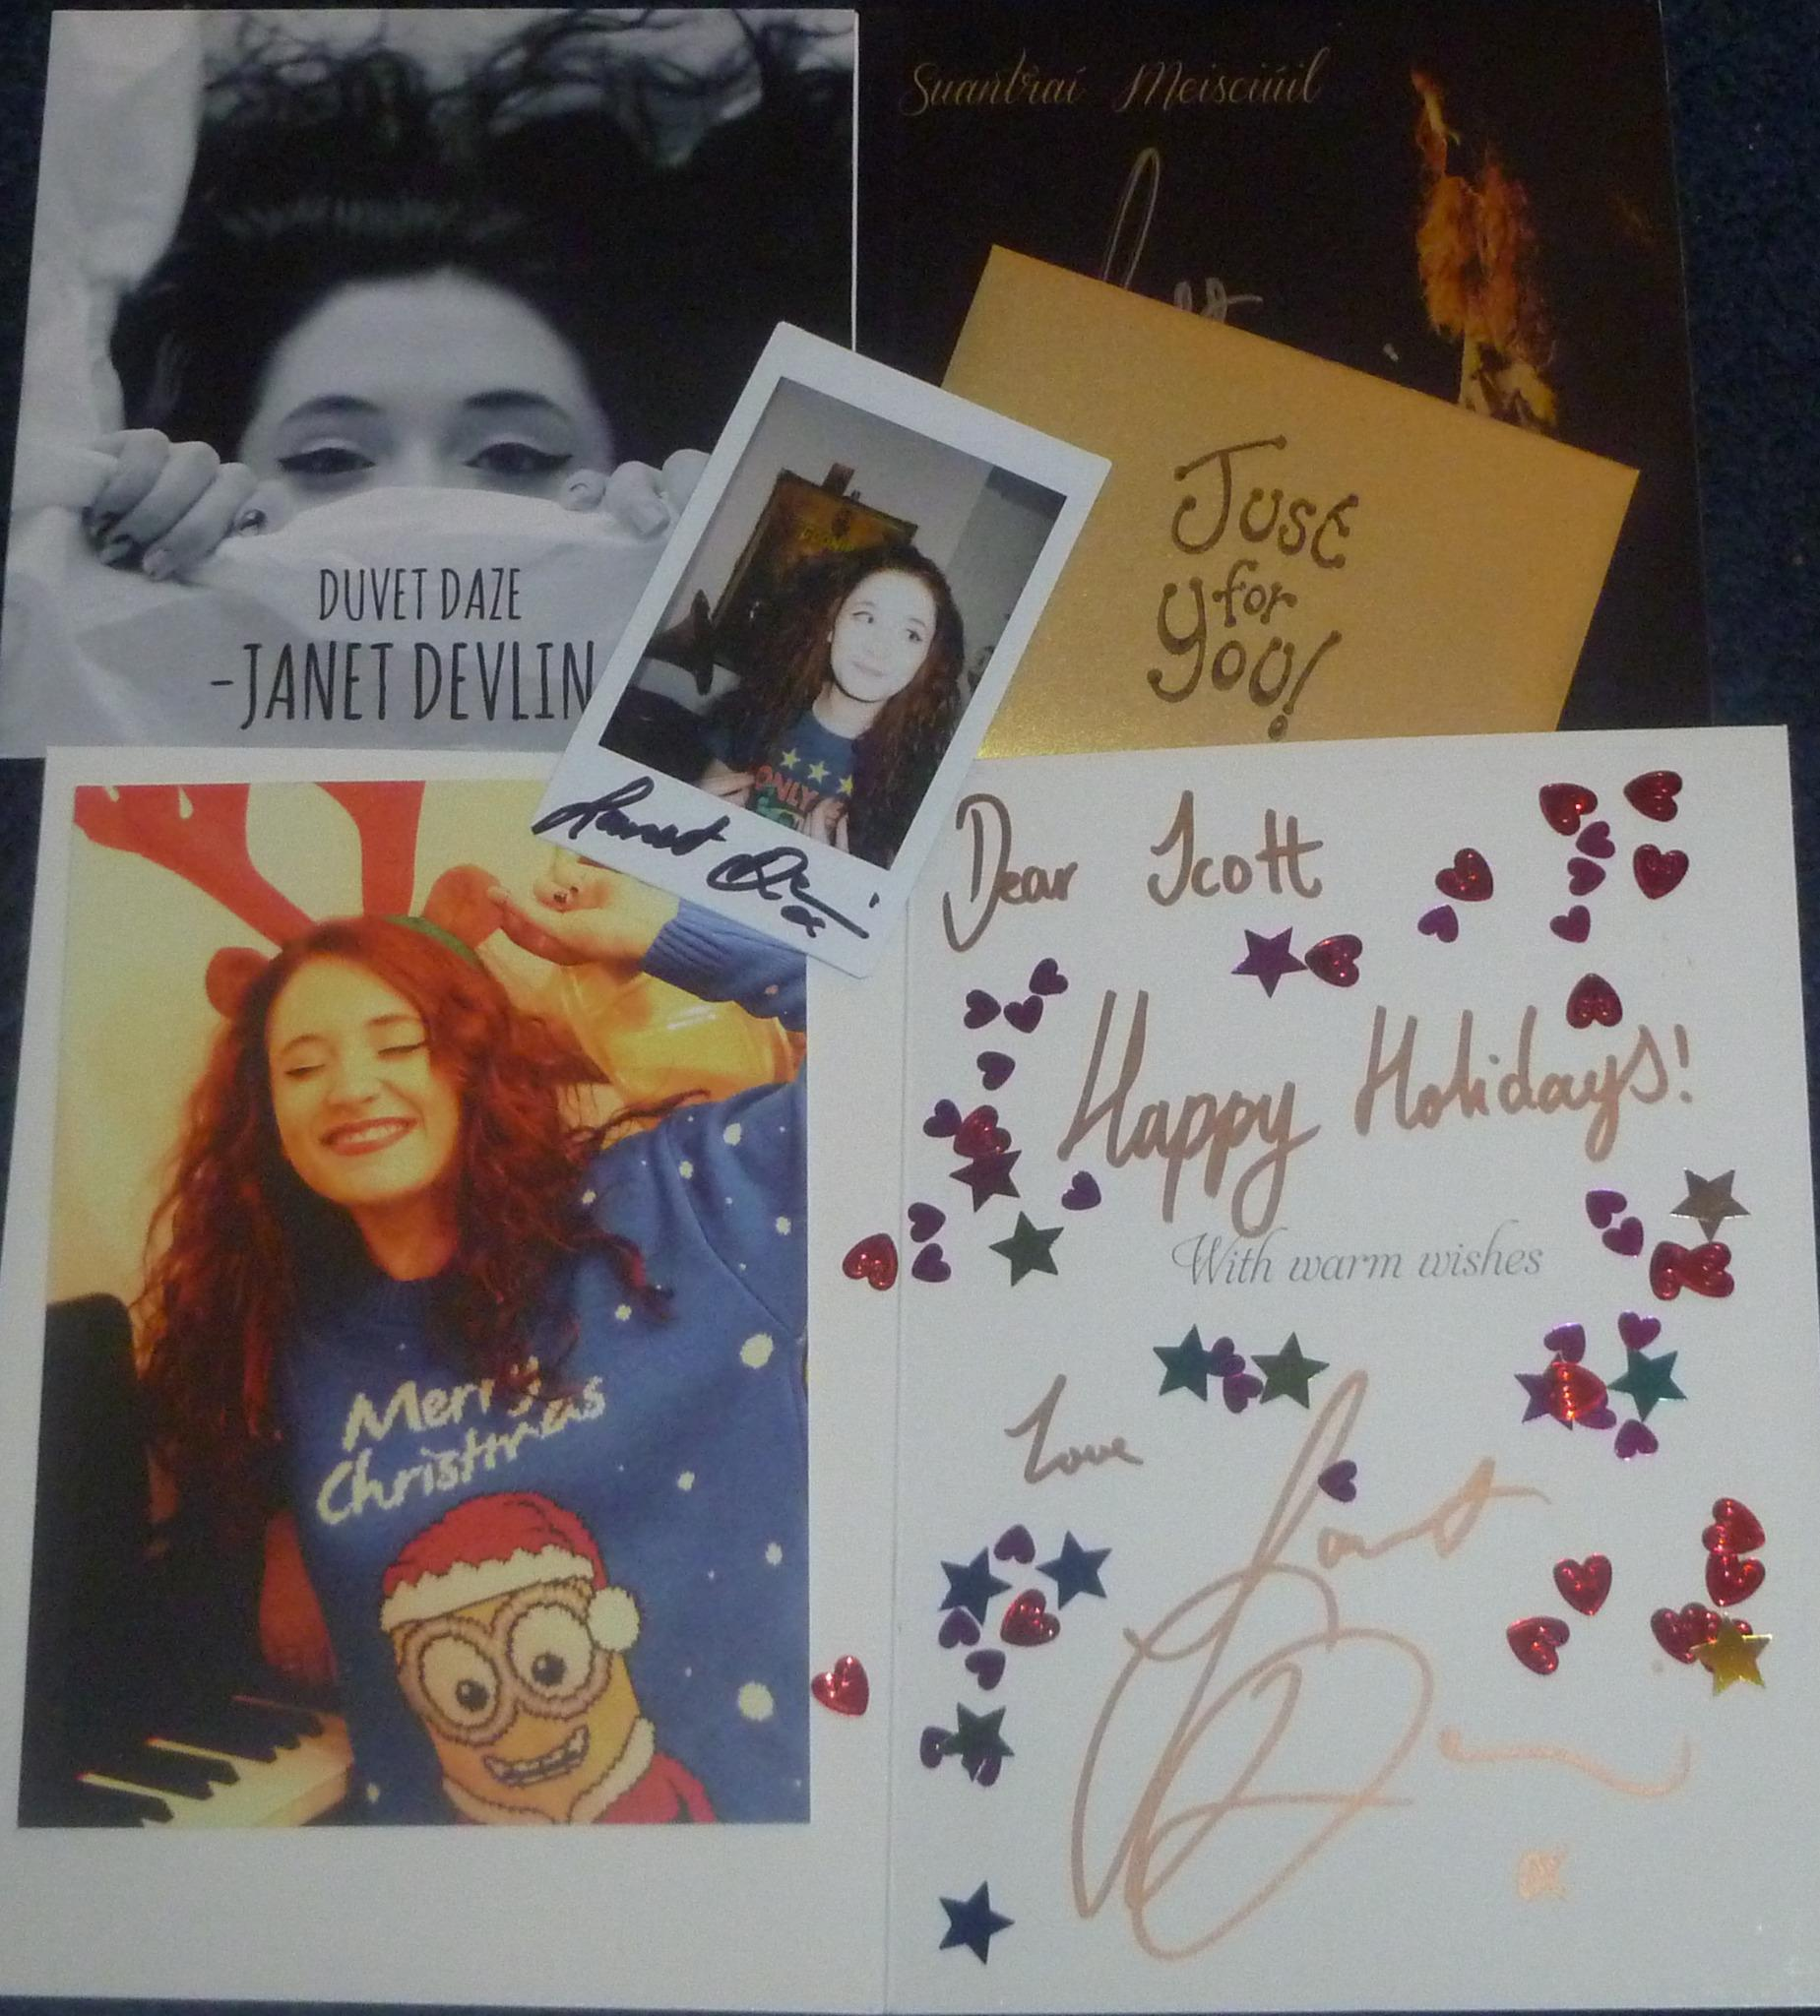 RT @ScottieReid: Possibly the best christmas card parcel i have ever received, thank you very much @JanetJealousy http://t.co/WIn6A7S3nm